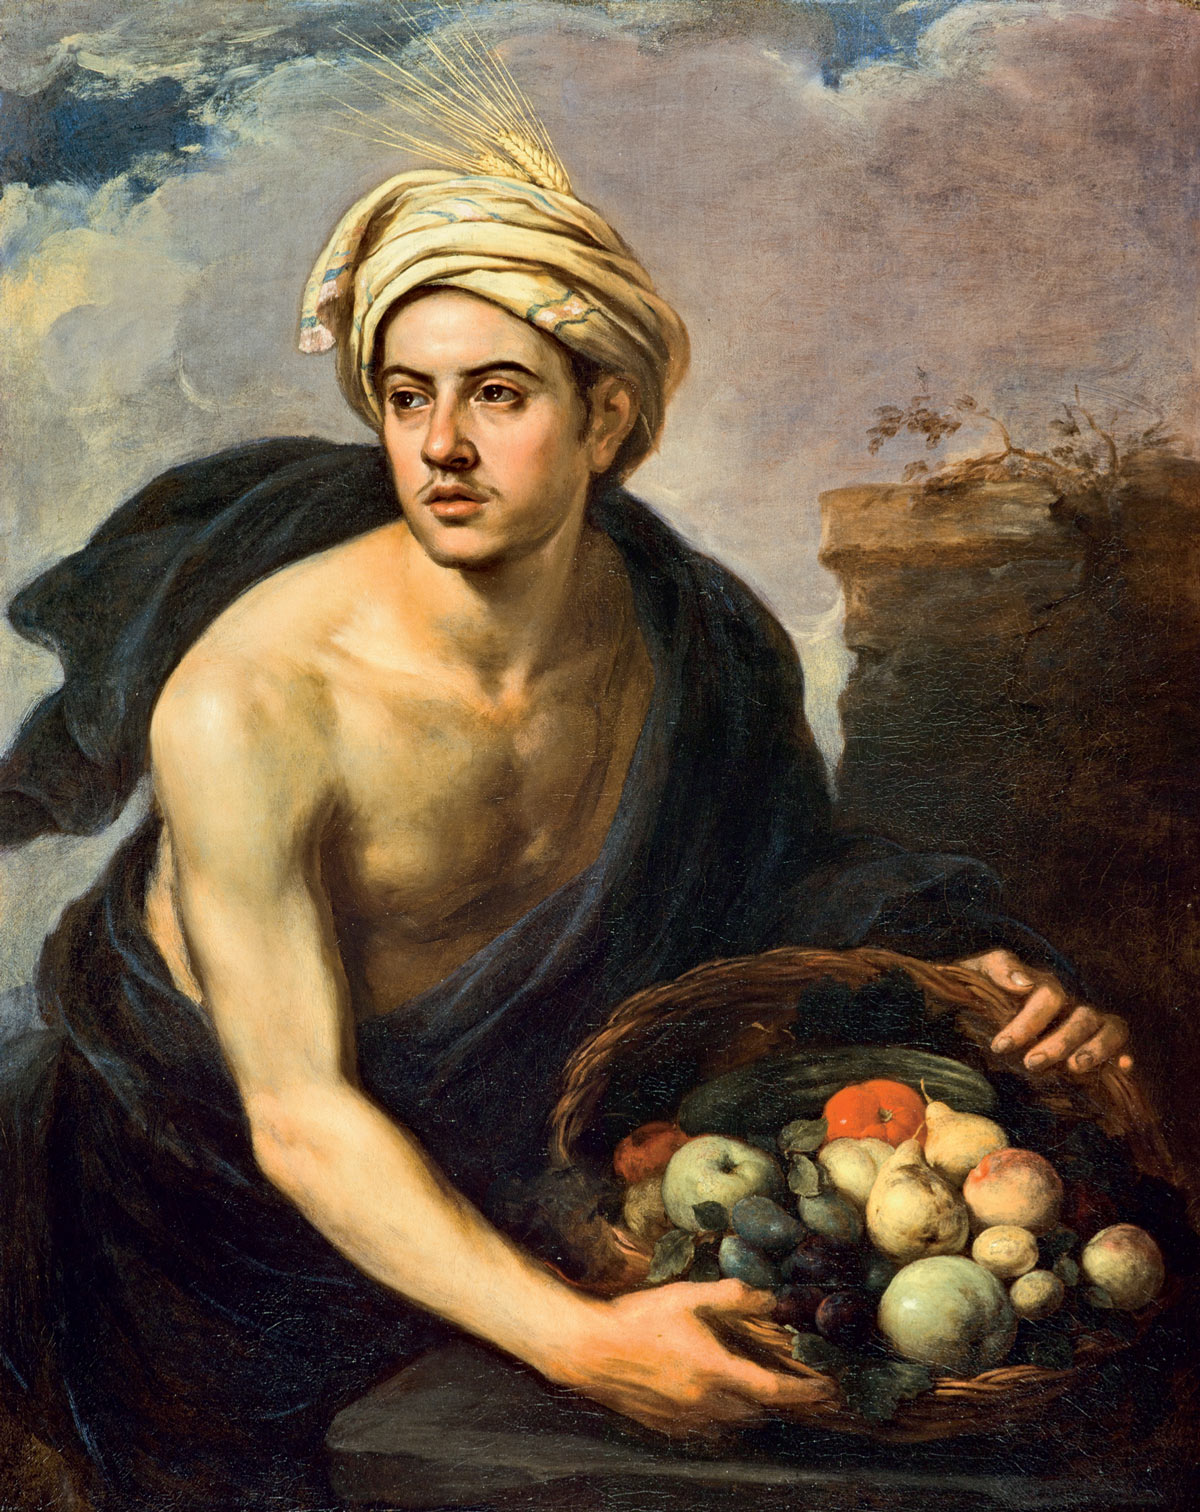 A Young Man with a Basket of Fruit by Bartolomé Esteban Murillo 16651670